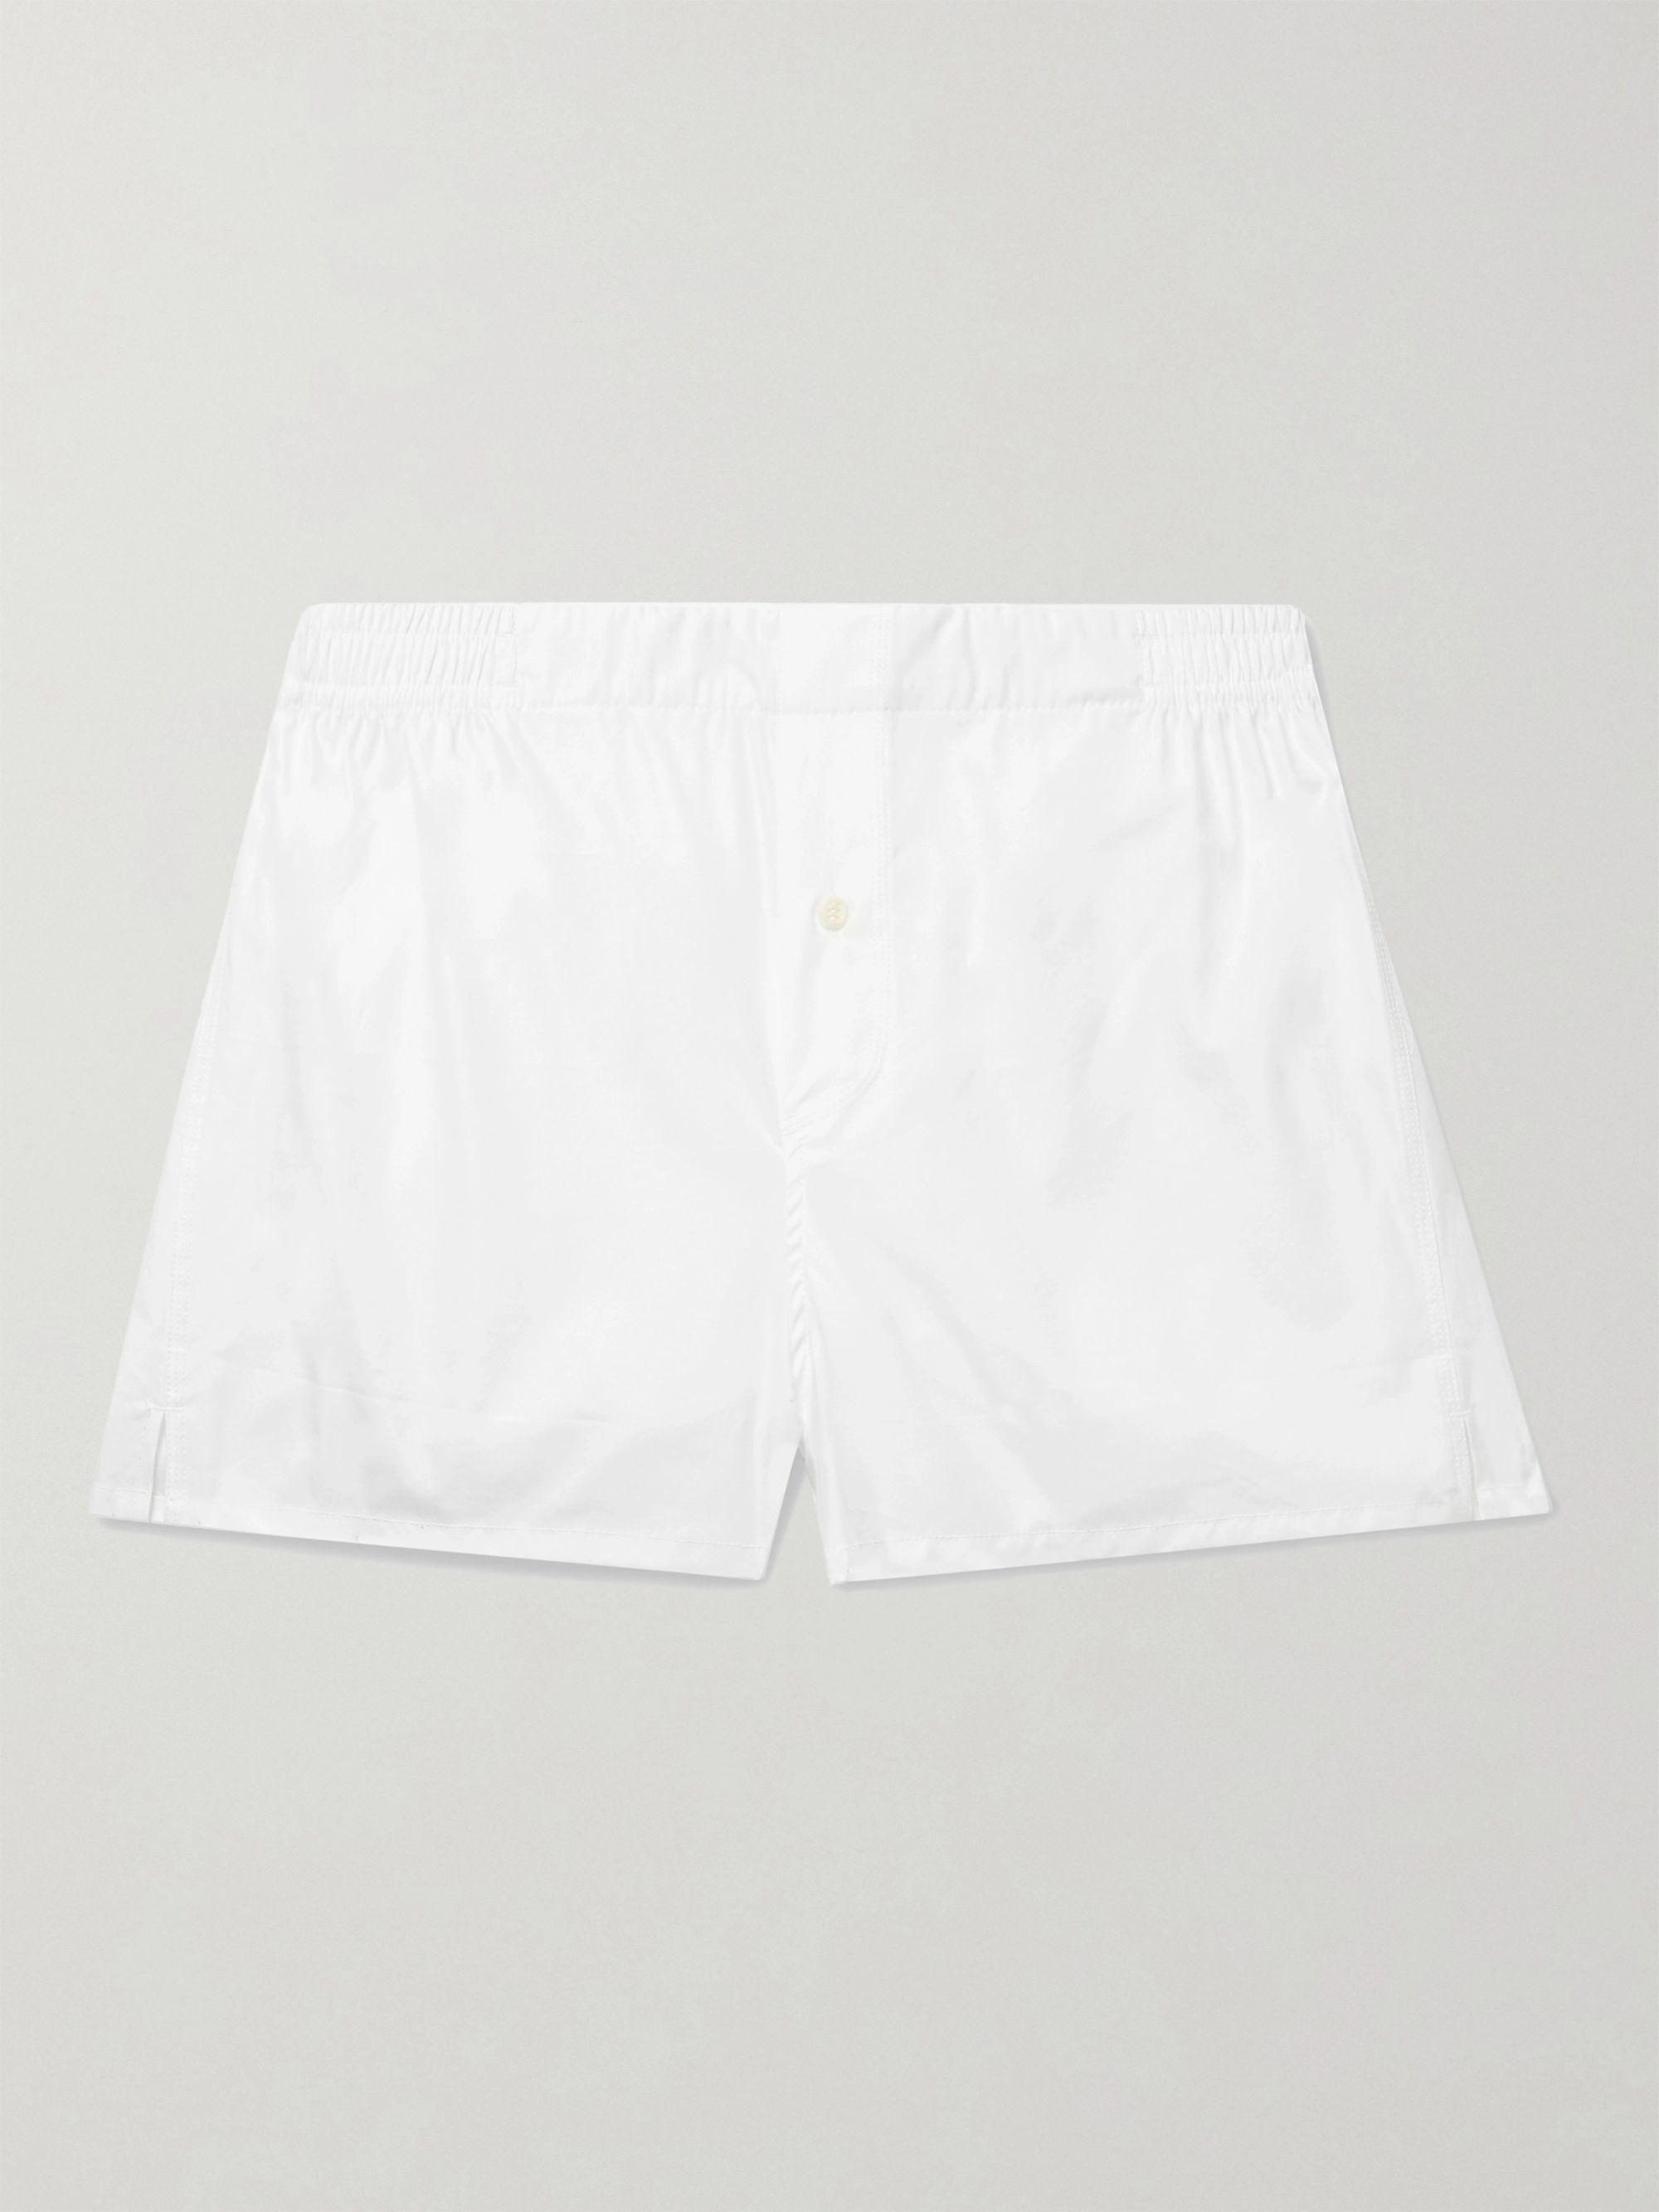 HAMILTON AND HARE Cotton Boxer Shorts